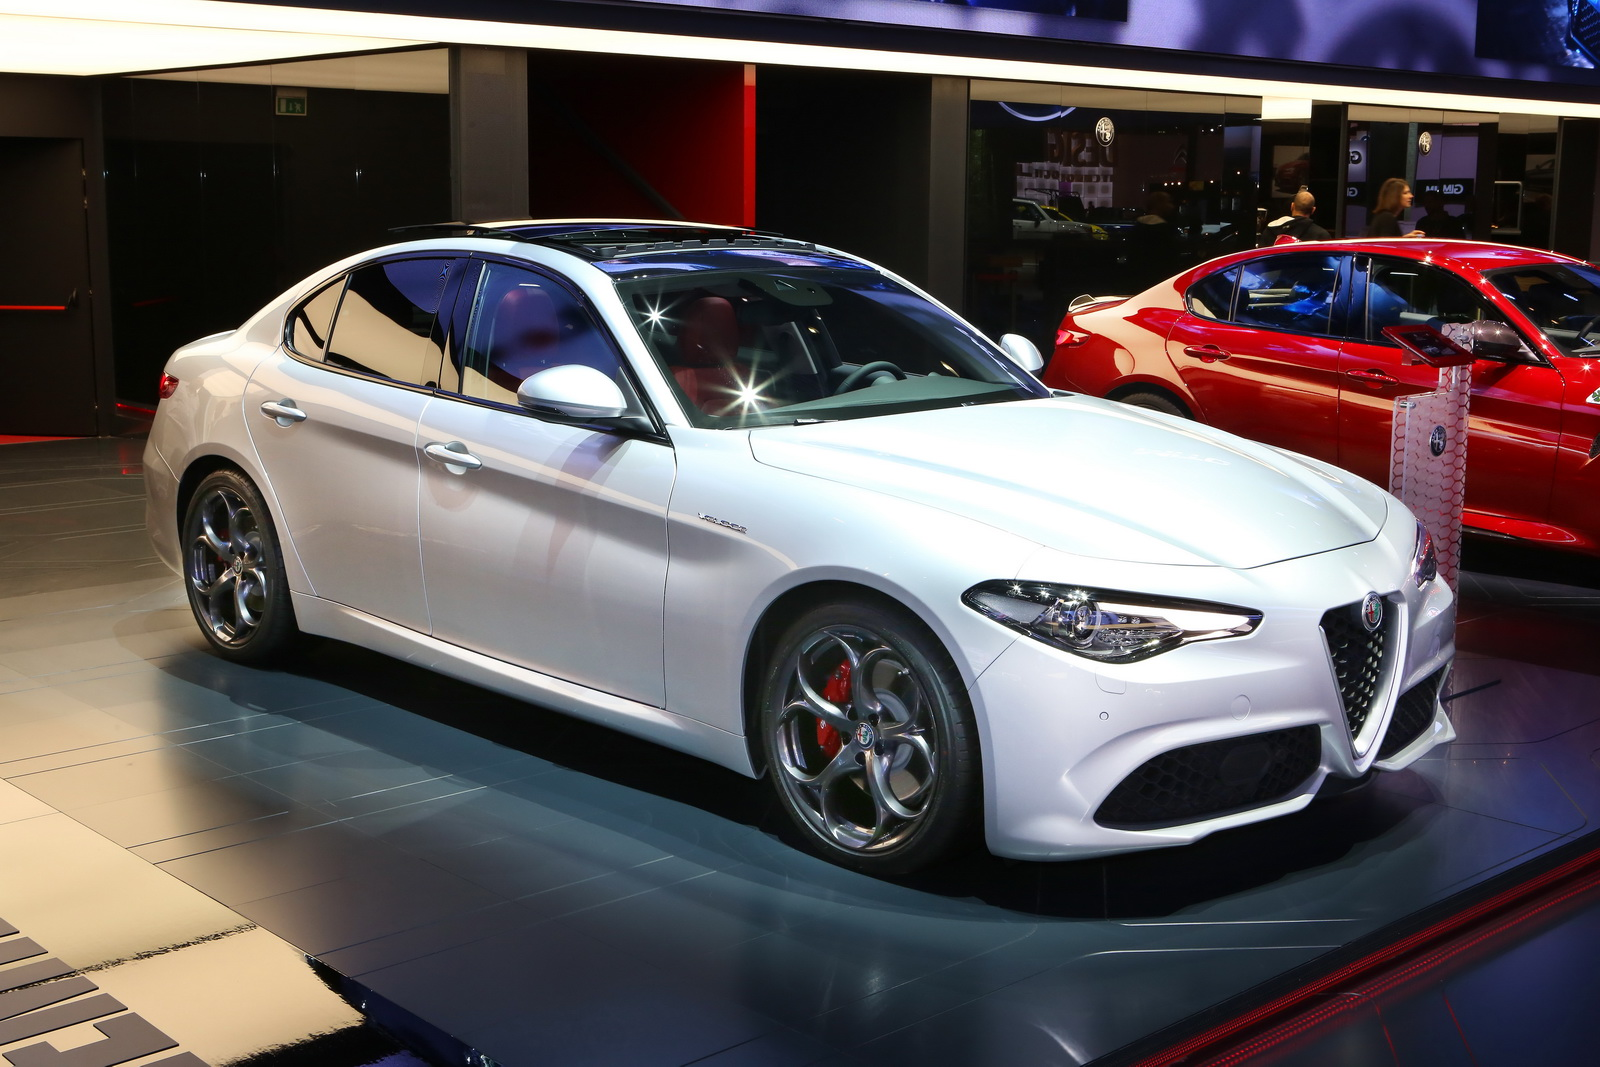 alfa romeo s new 276hp giulia veloce looks like the pick of the range w video carscoops. Black Bedroom Furniture Sets. Home Design Ideas